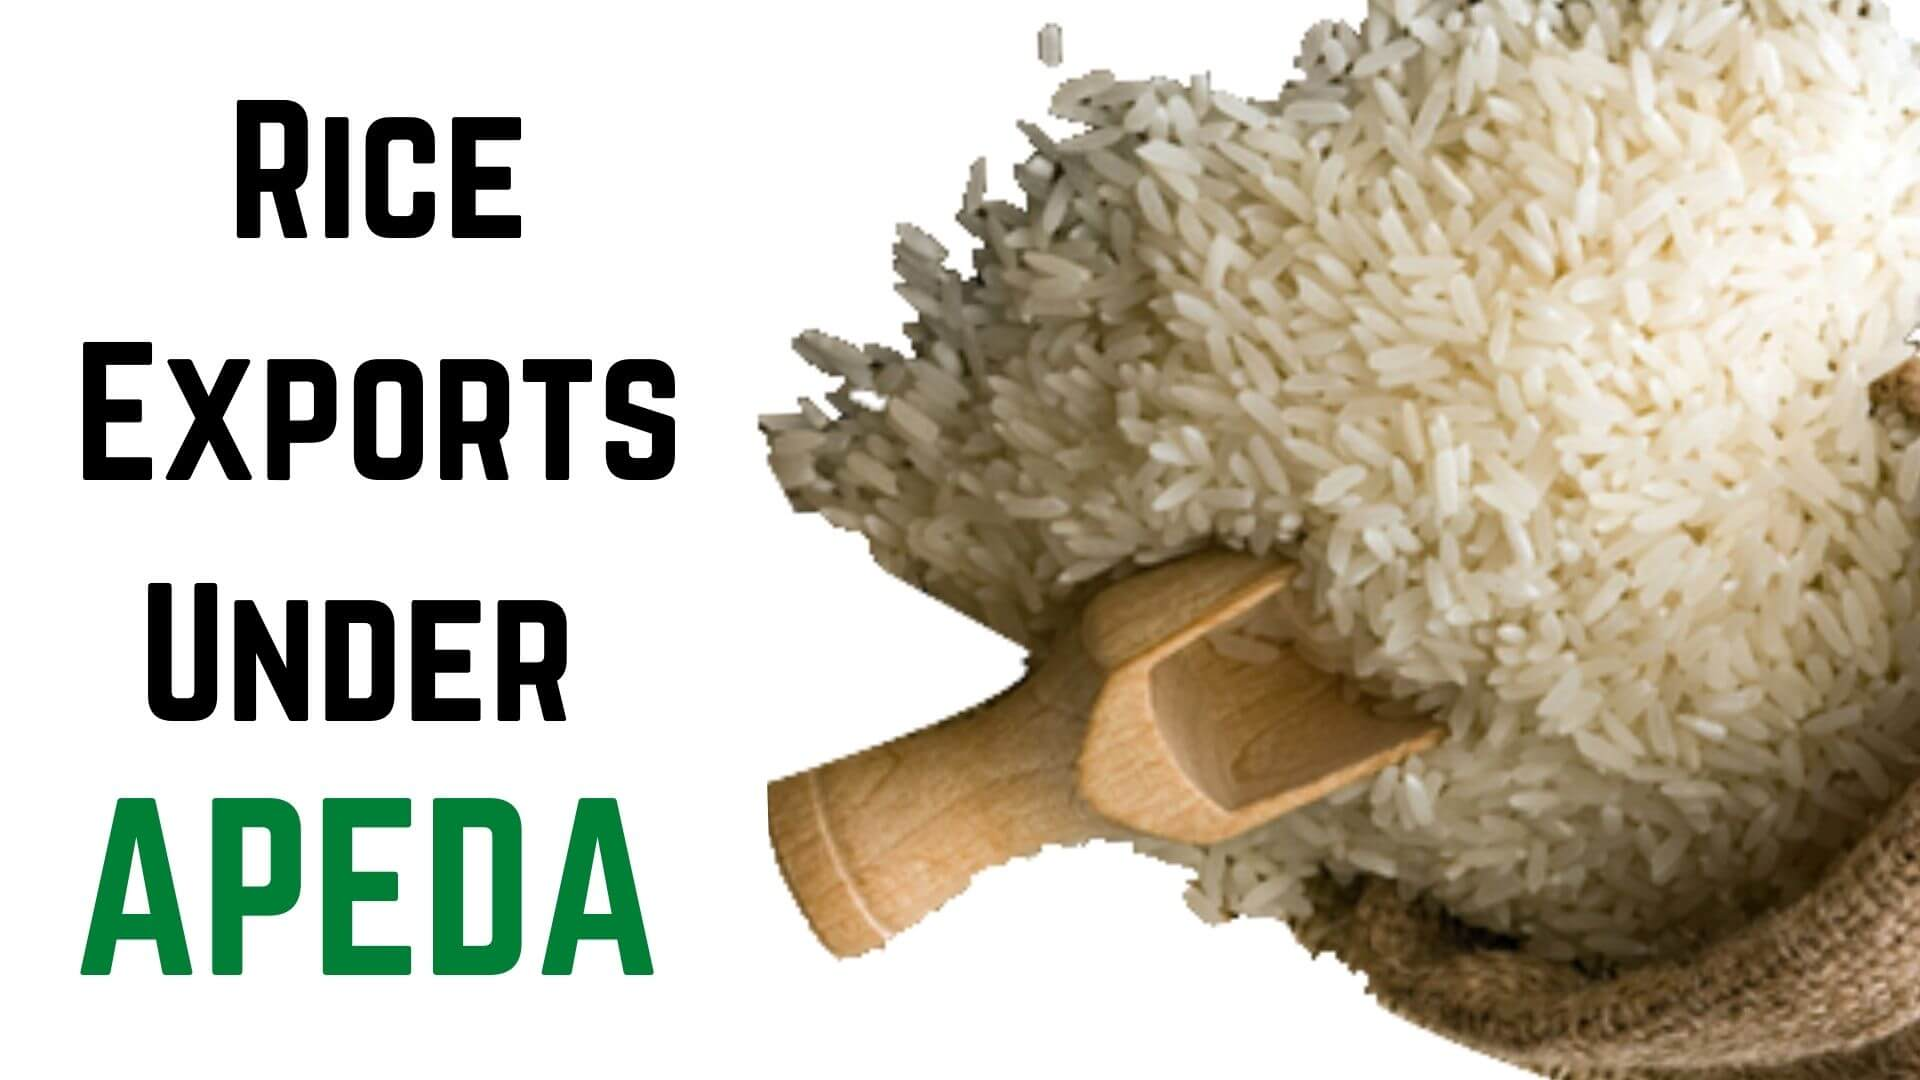 Rice exports from Varanasi to Qatar for the first time -APEDA proud!